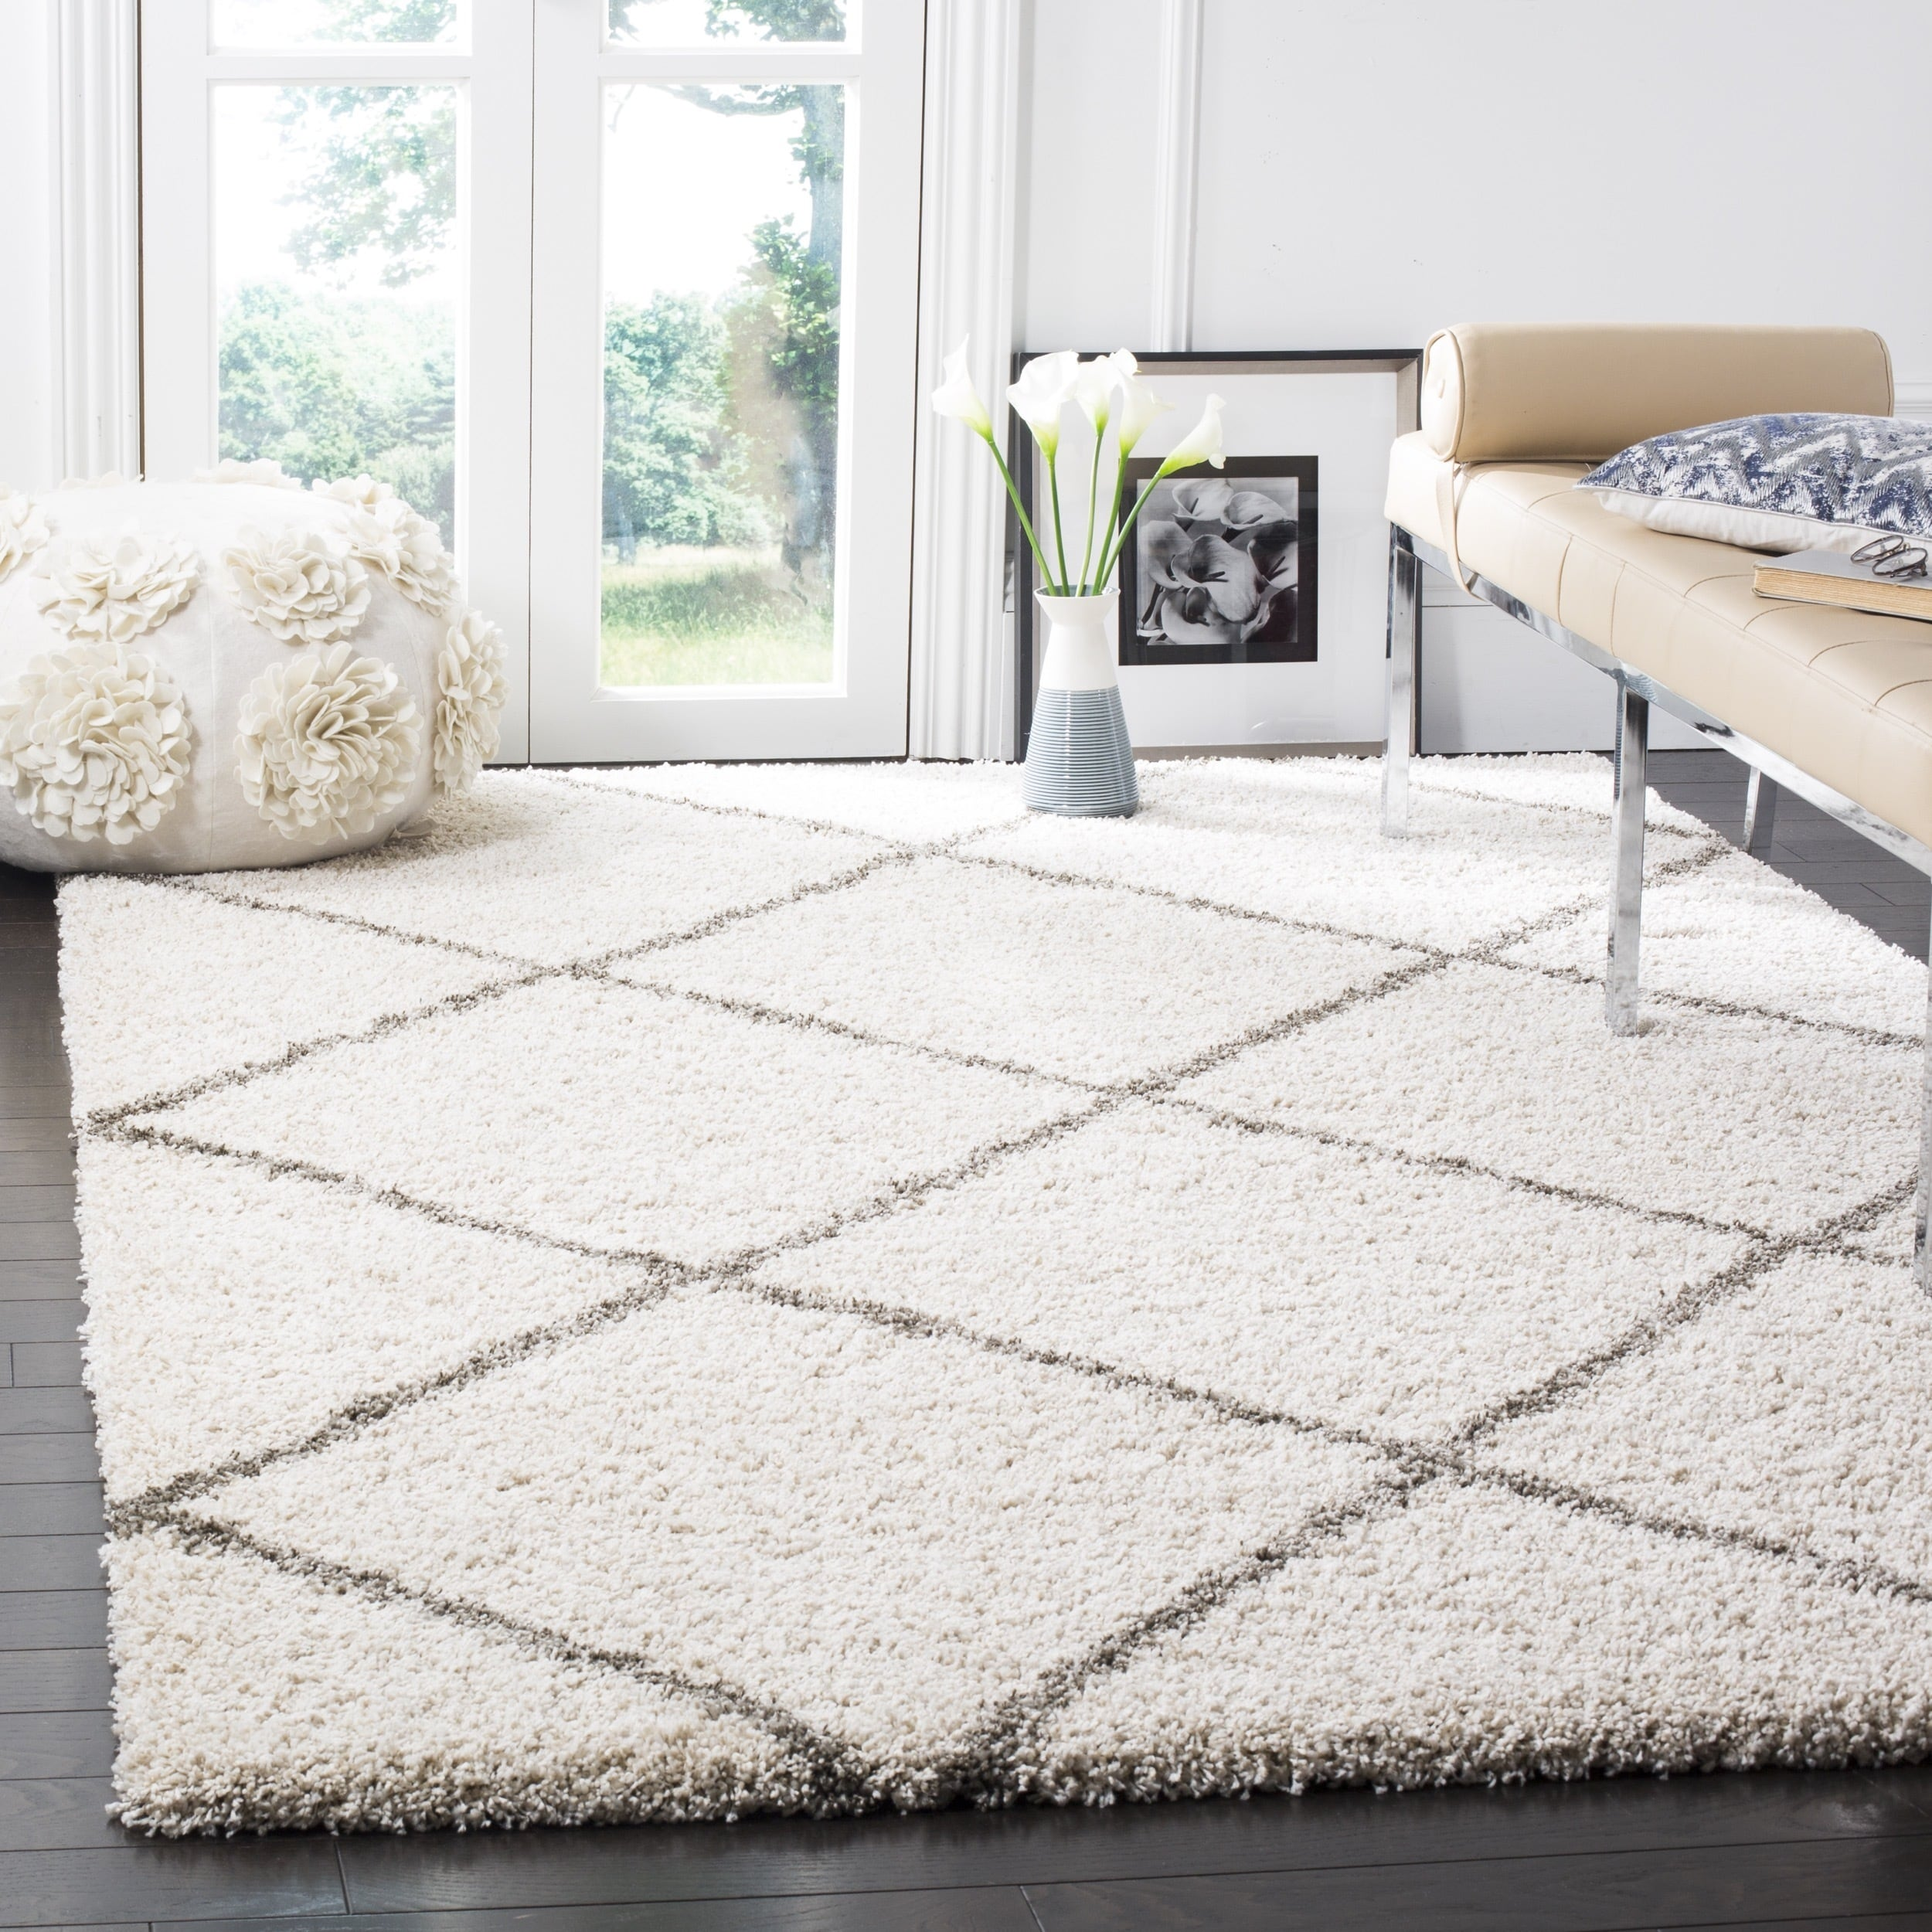 top foot cheap furry carpet for bedroom flooring magnificent home round off modern very oriental rugs big fuzzy white large cream rug awesome wondrous plush shag area fluffy your